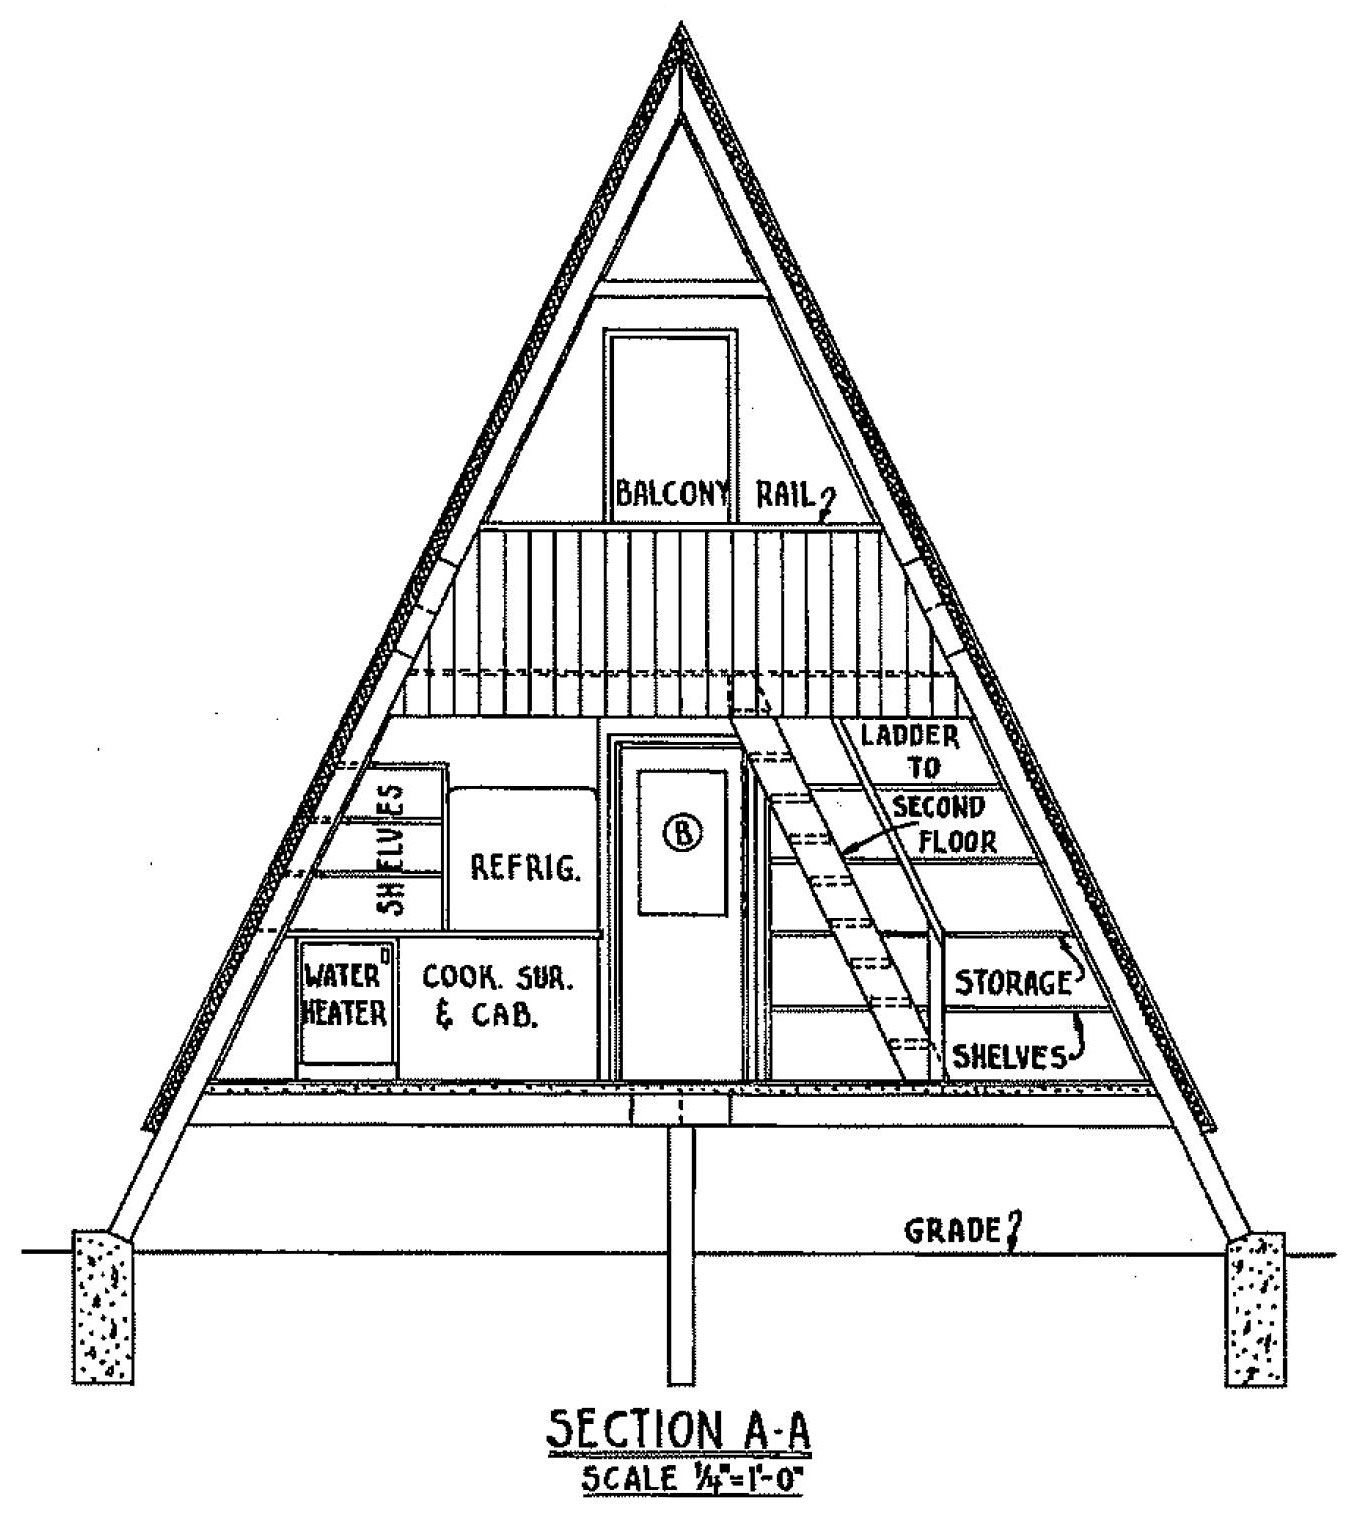 Http Free Woodworking Plans Org Images A Frame House 5965 A Frame House Cross Section A O Jpg A Frame H A Frame Cabin Plans A Frame House Plans A Frame House